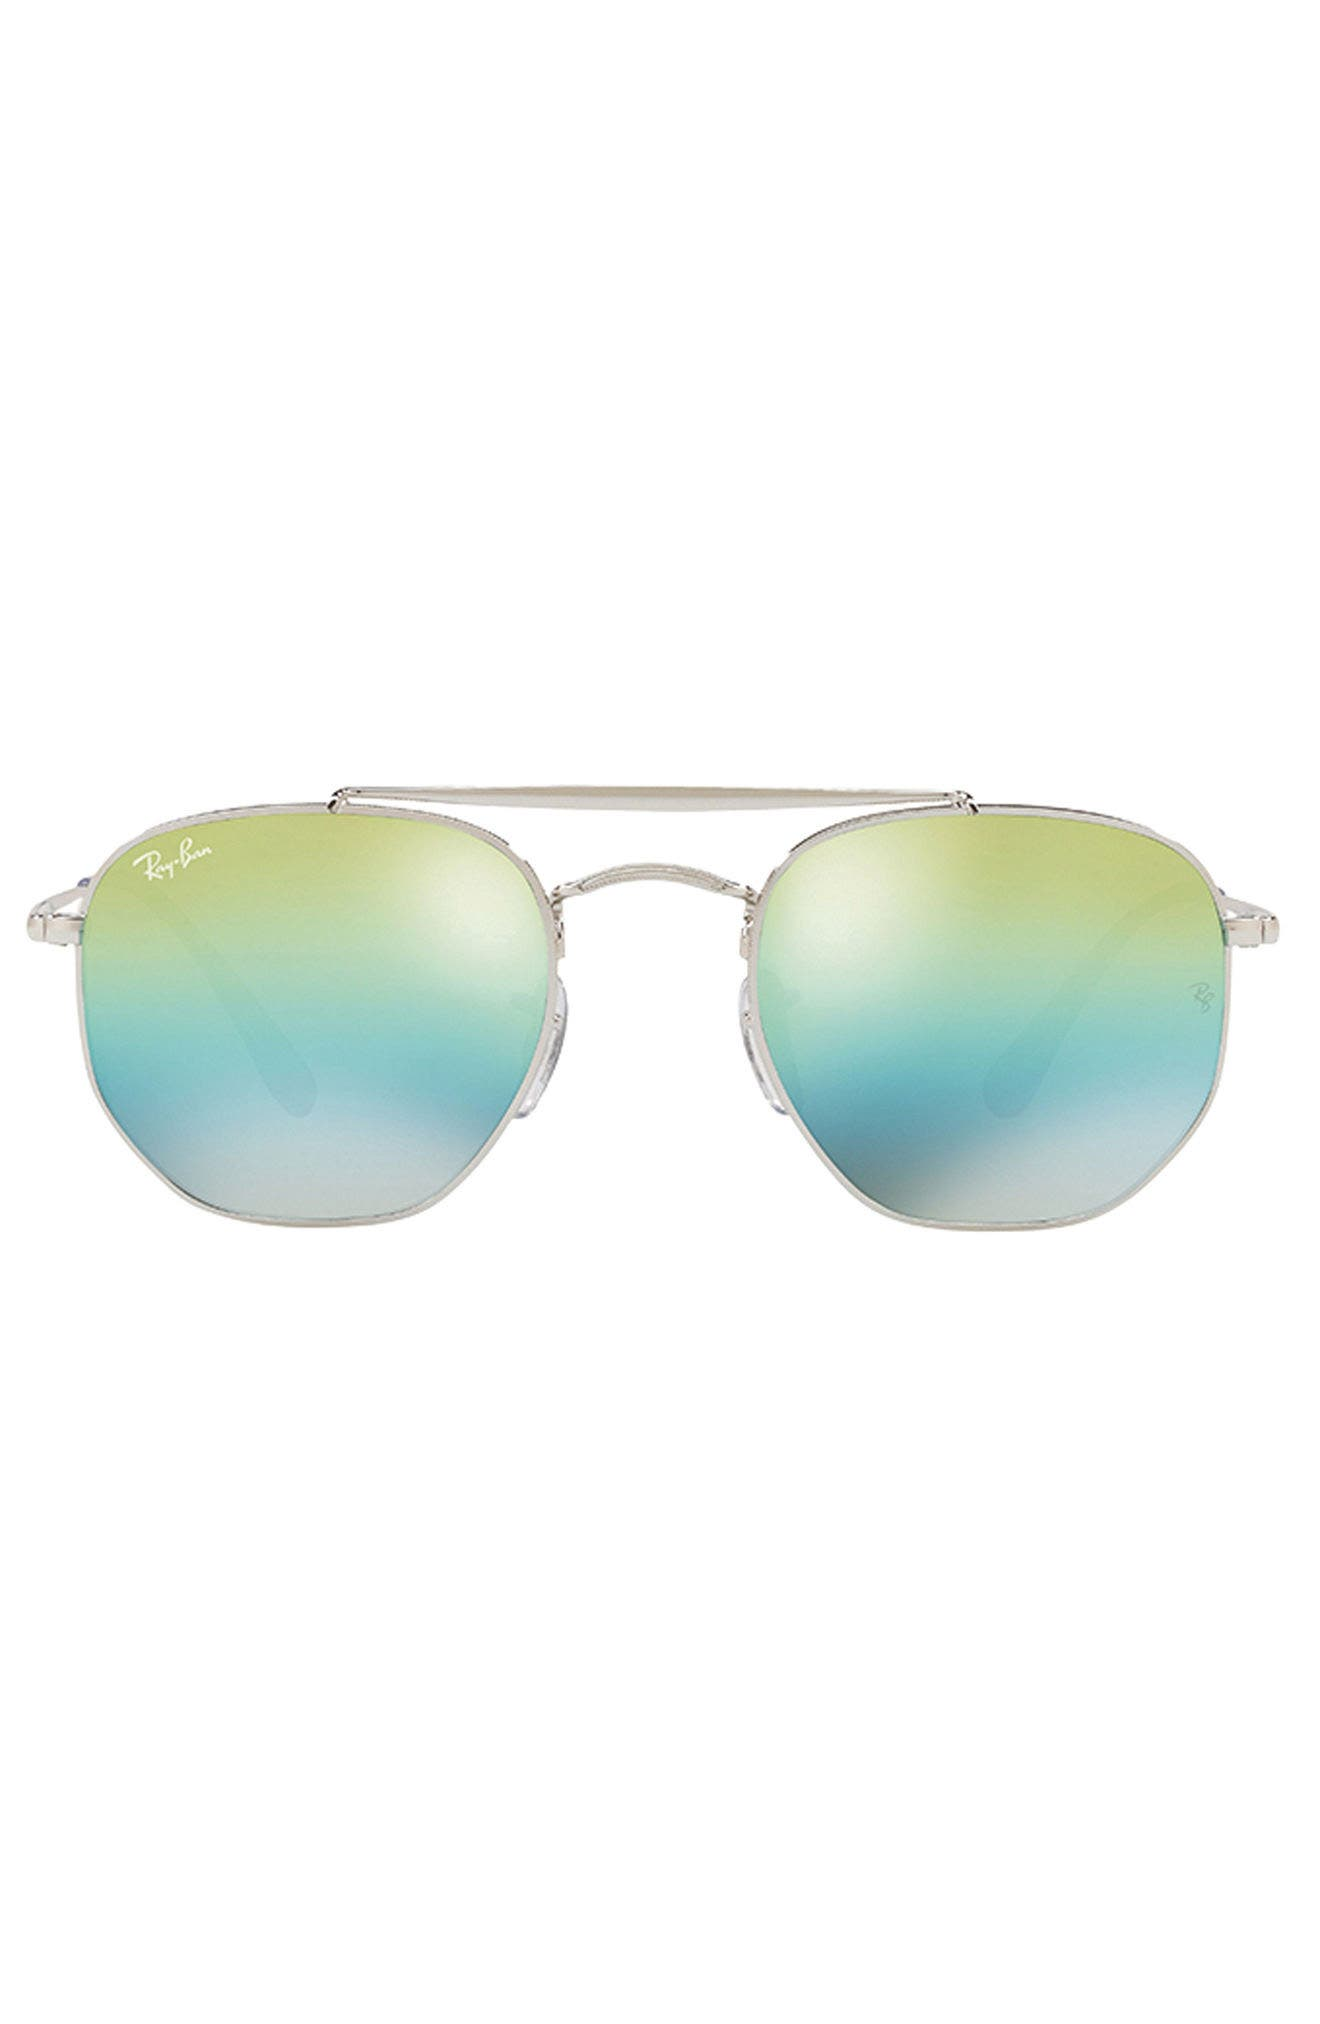 Marshal 54mm Aviator Sunglasses,                             Alternate thumbnail 4, color,                             040